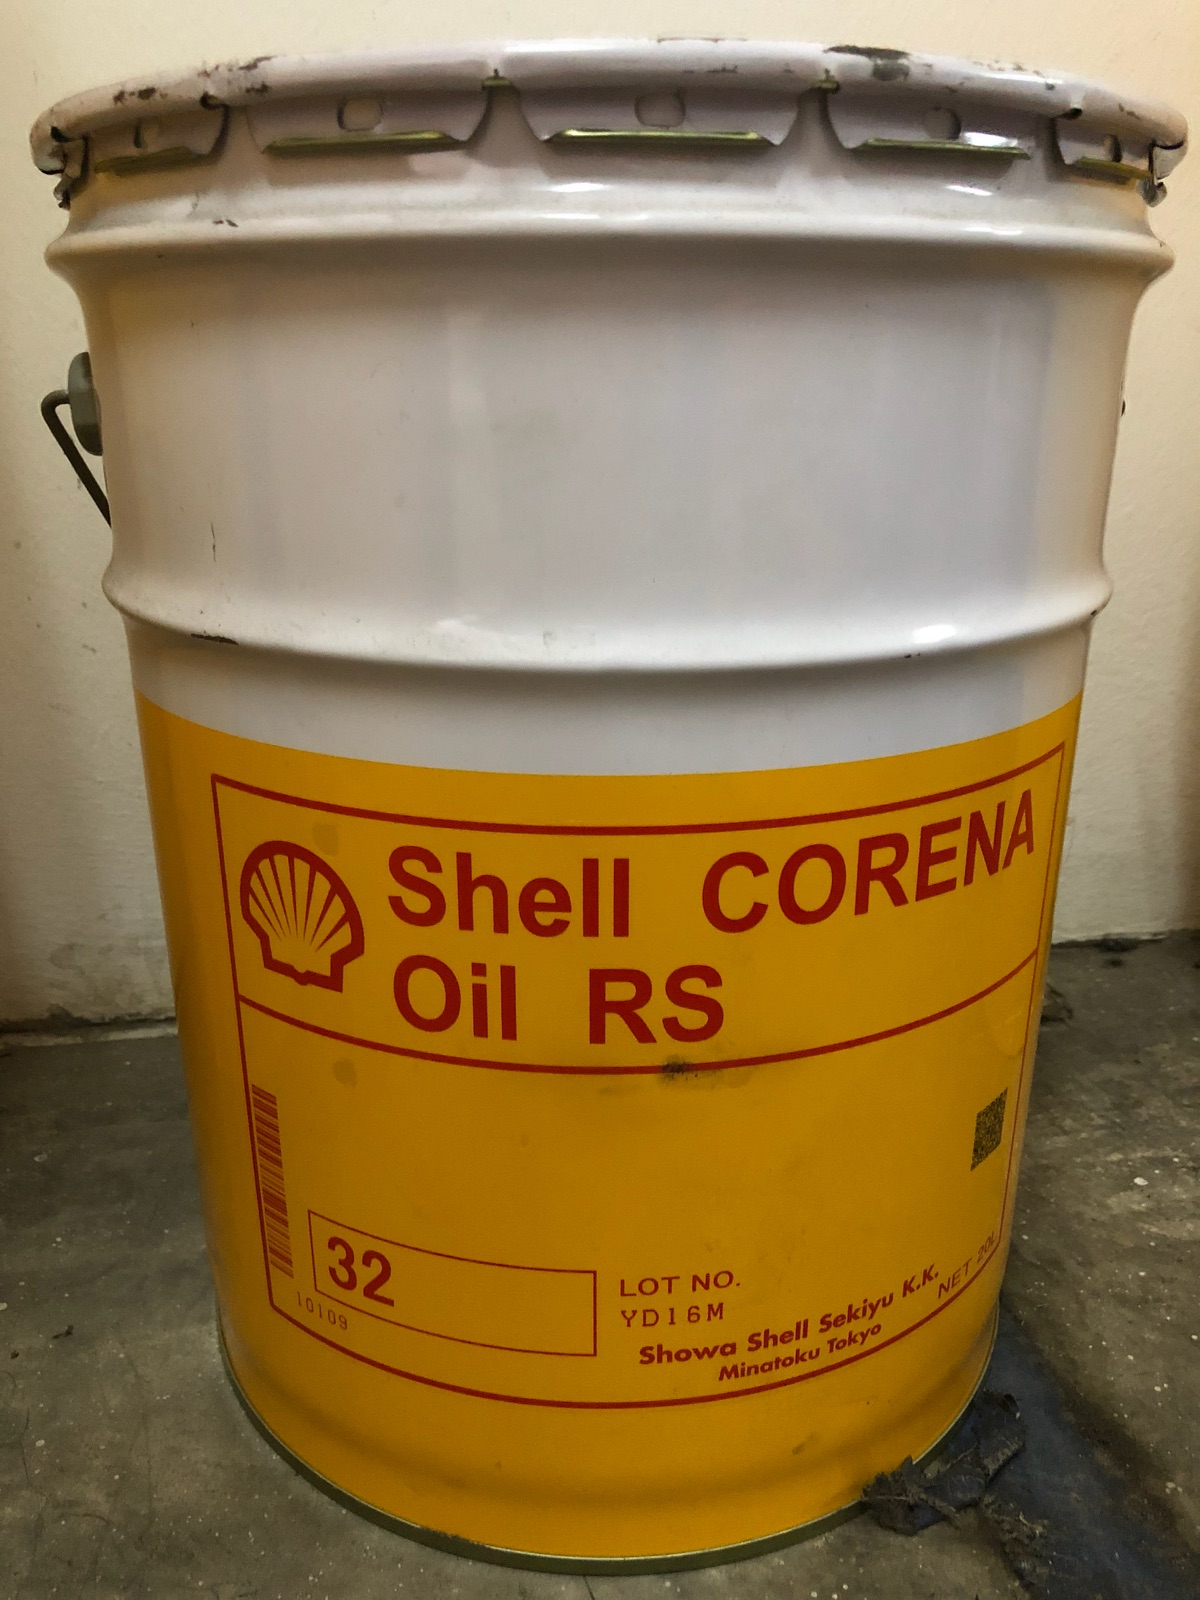 Shell Compressor Oil RS 32